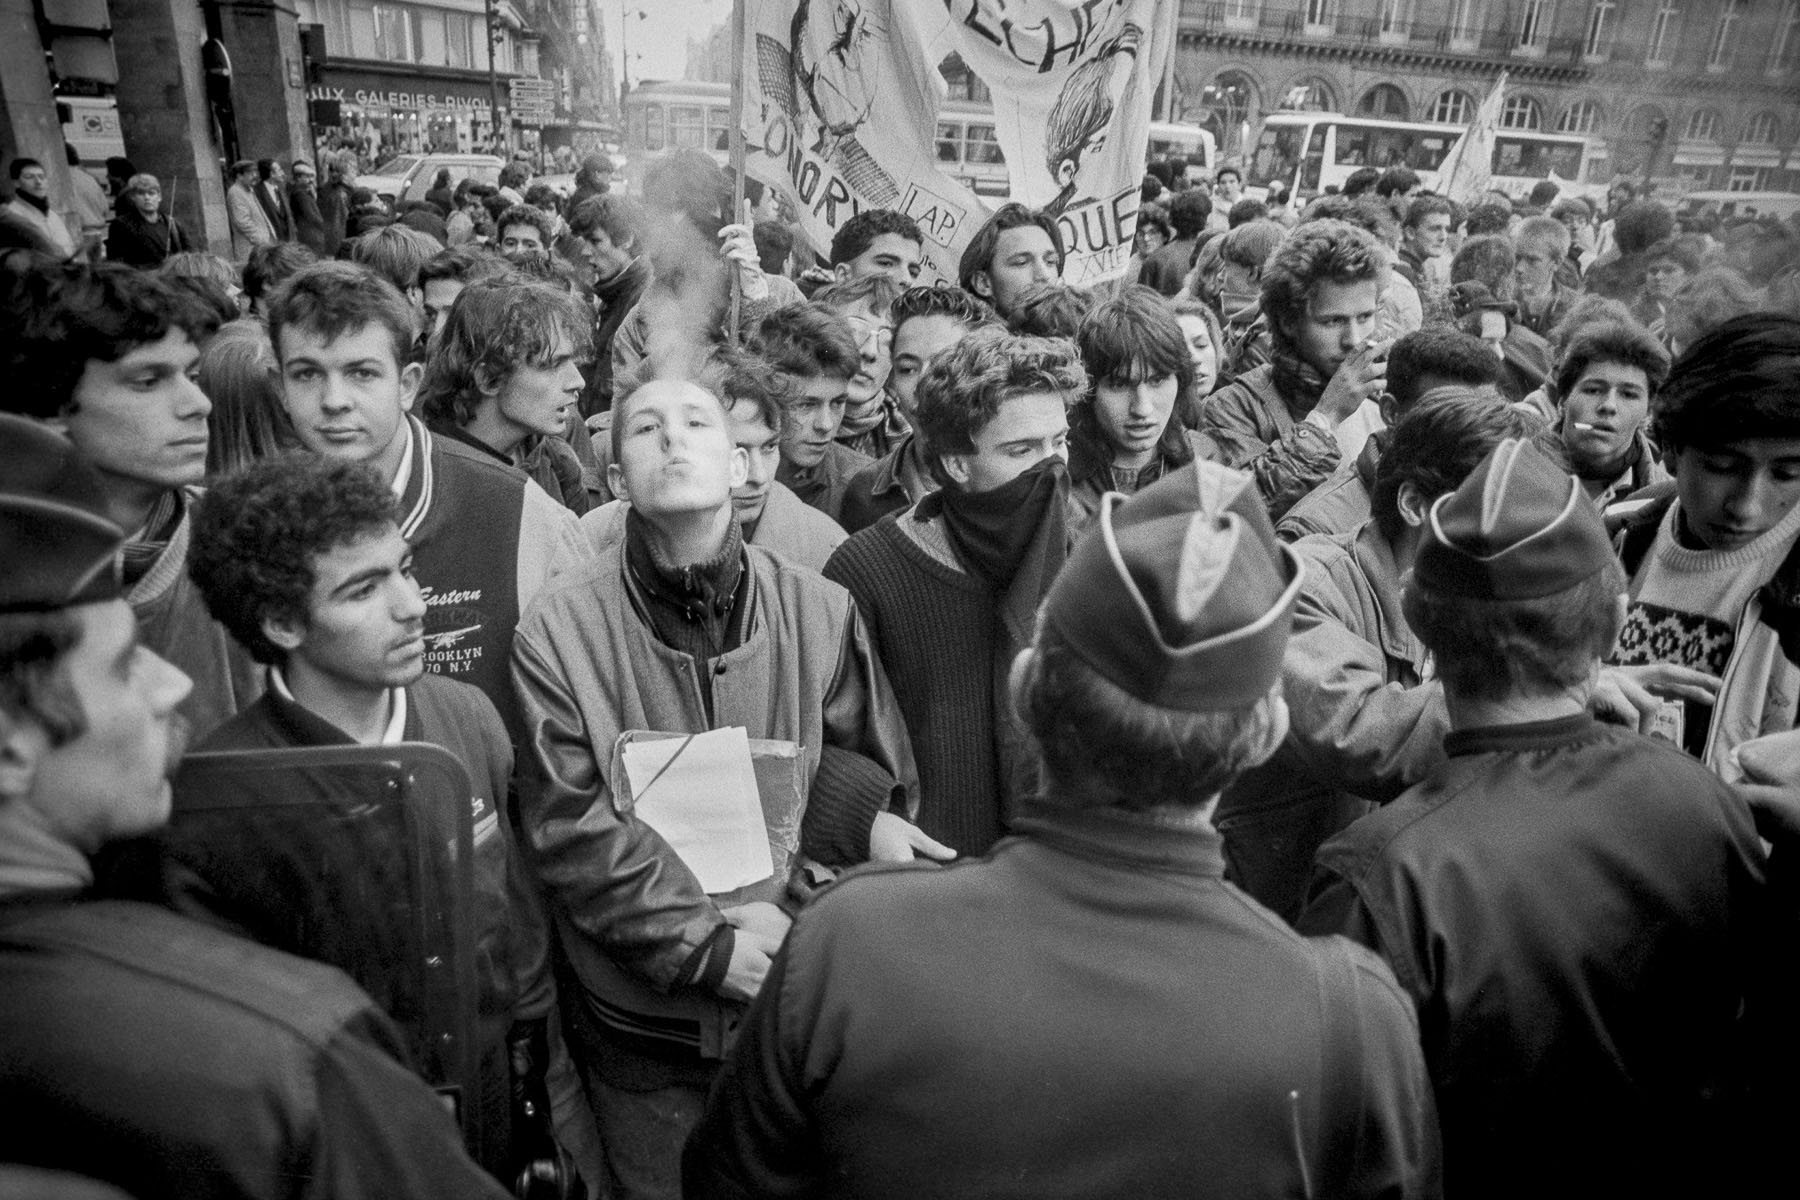 Students demonstration against Devaquet minister reform draft in the Quartier Latin on november 1986